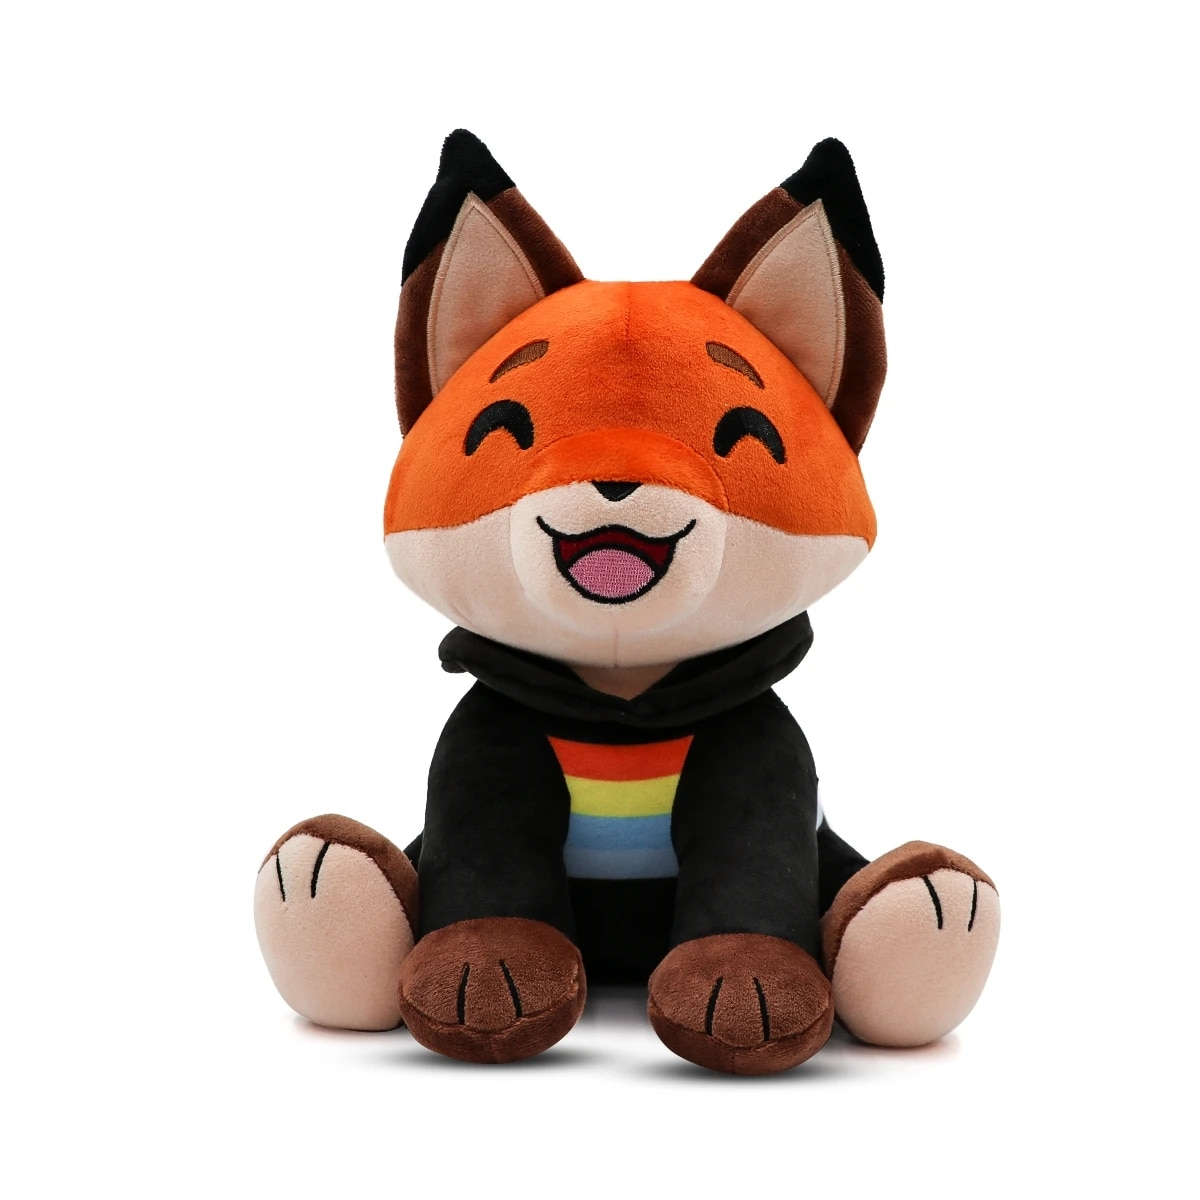 slimecicle plush toy cute animal stuffed soft slimecicle doll cartoon figure game toys for children kids birthday gifts 20cm 25cm Cute Fundy Plush Toy Cartoon Game Figure Doll Soft Stuffed Animal Fox Plush Doll Birthday Gift Toys for Kids Girls